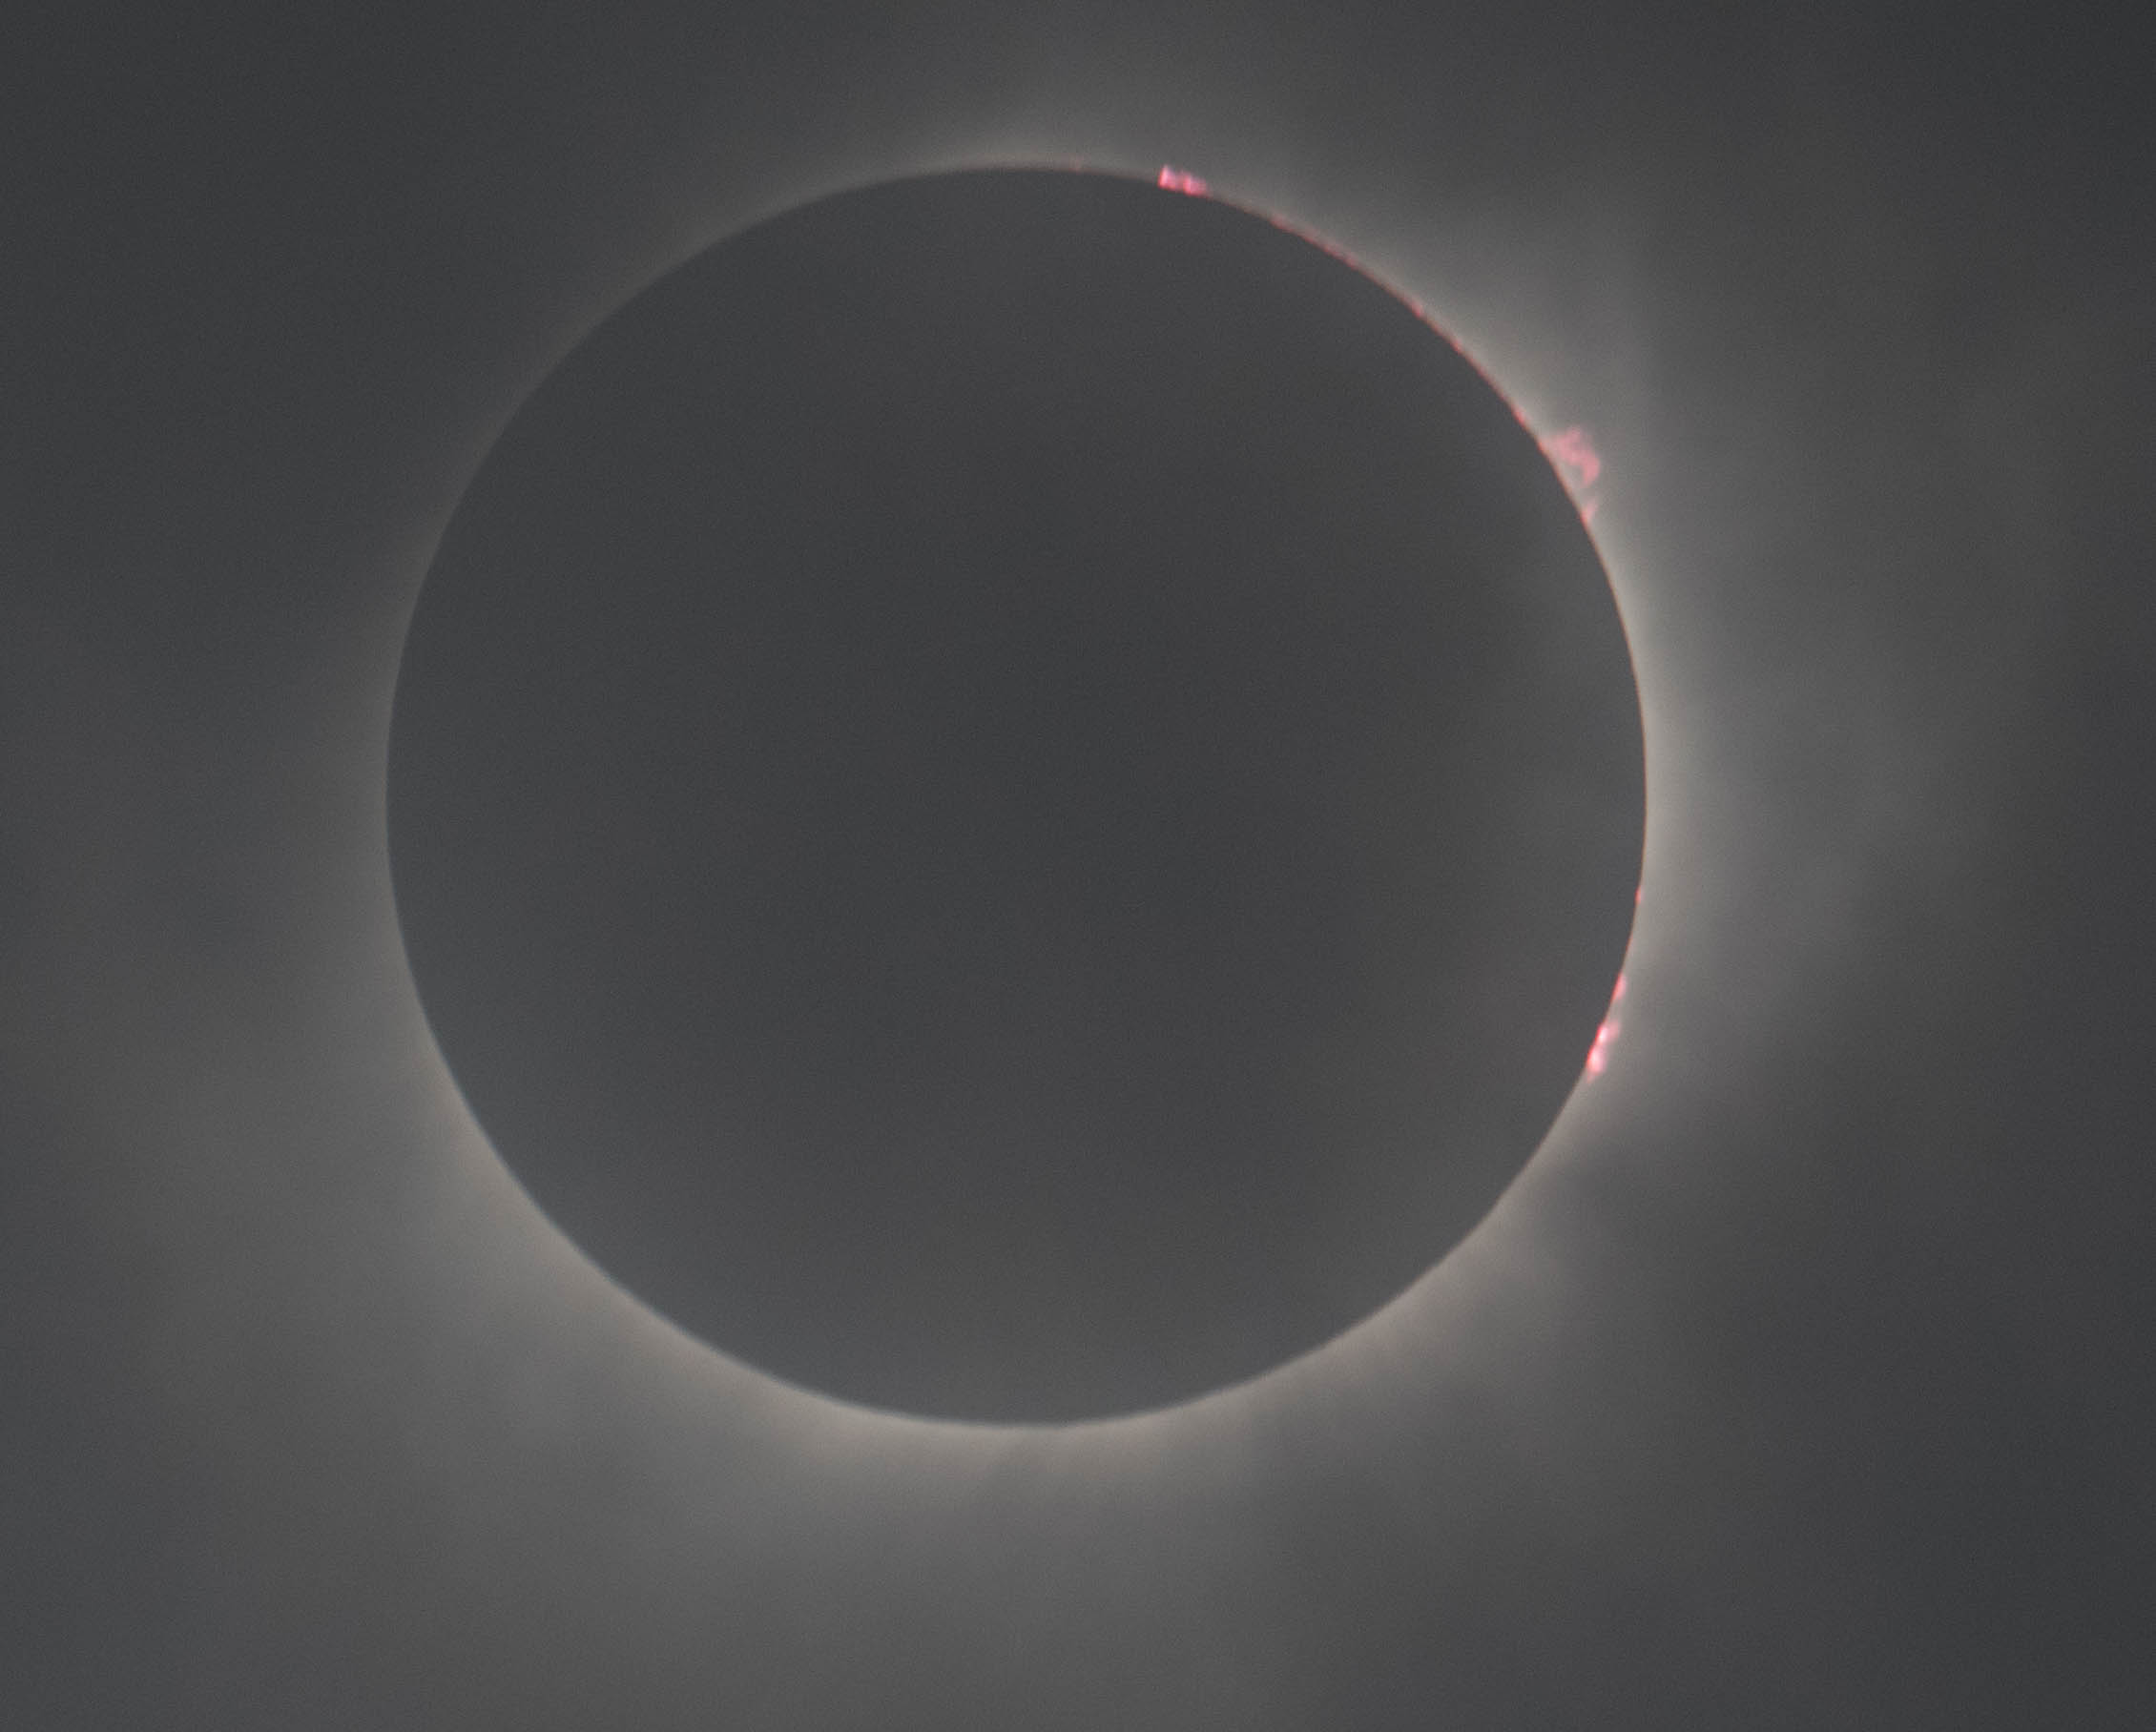 Eclipse-13.jpg